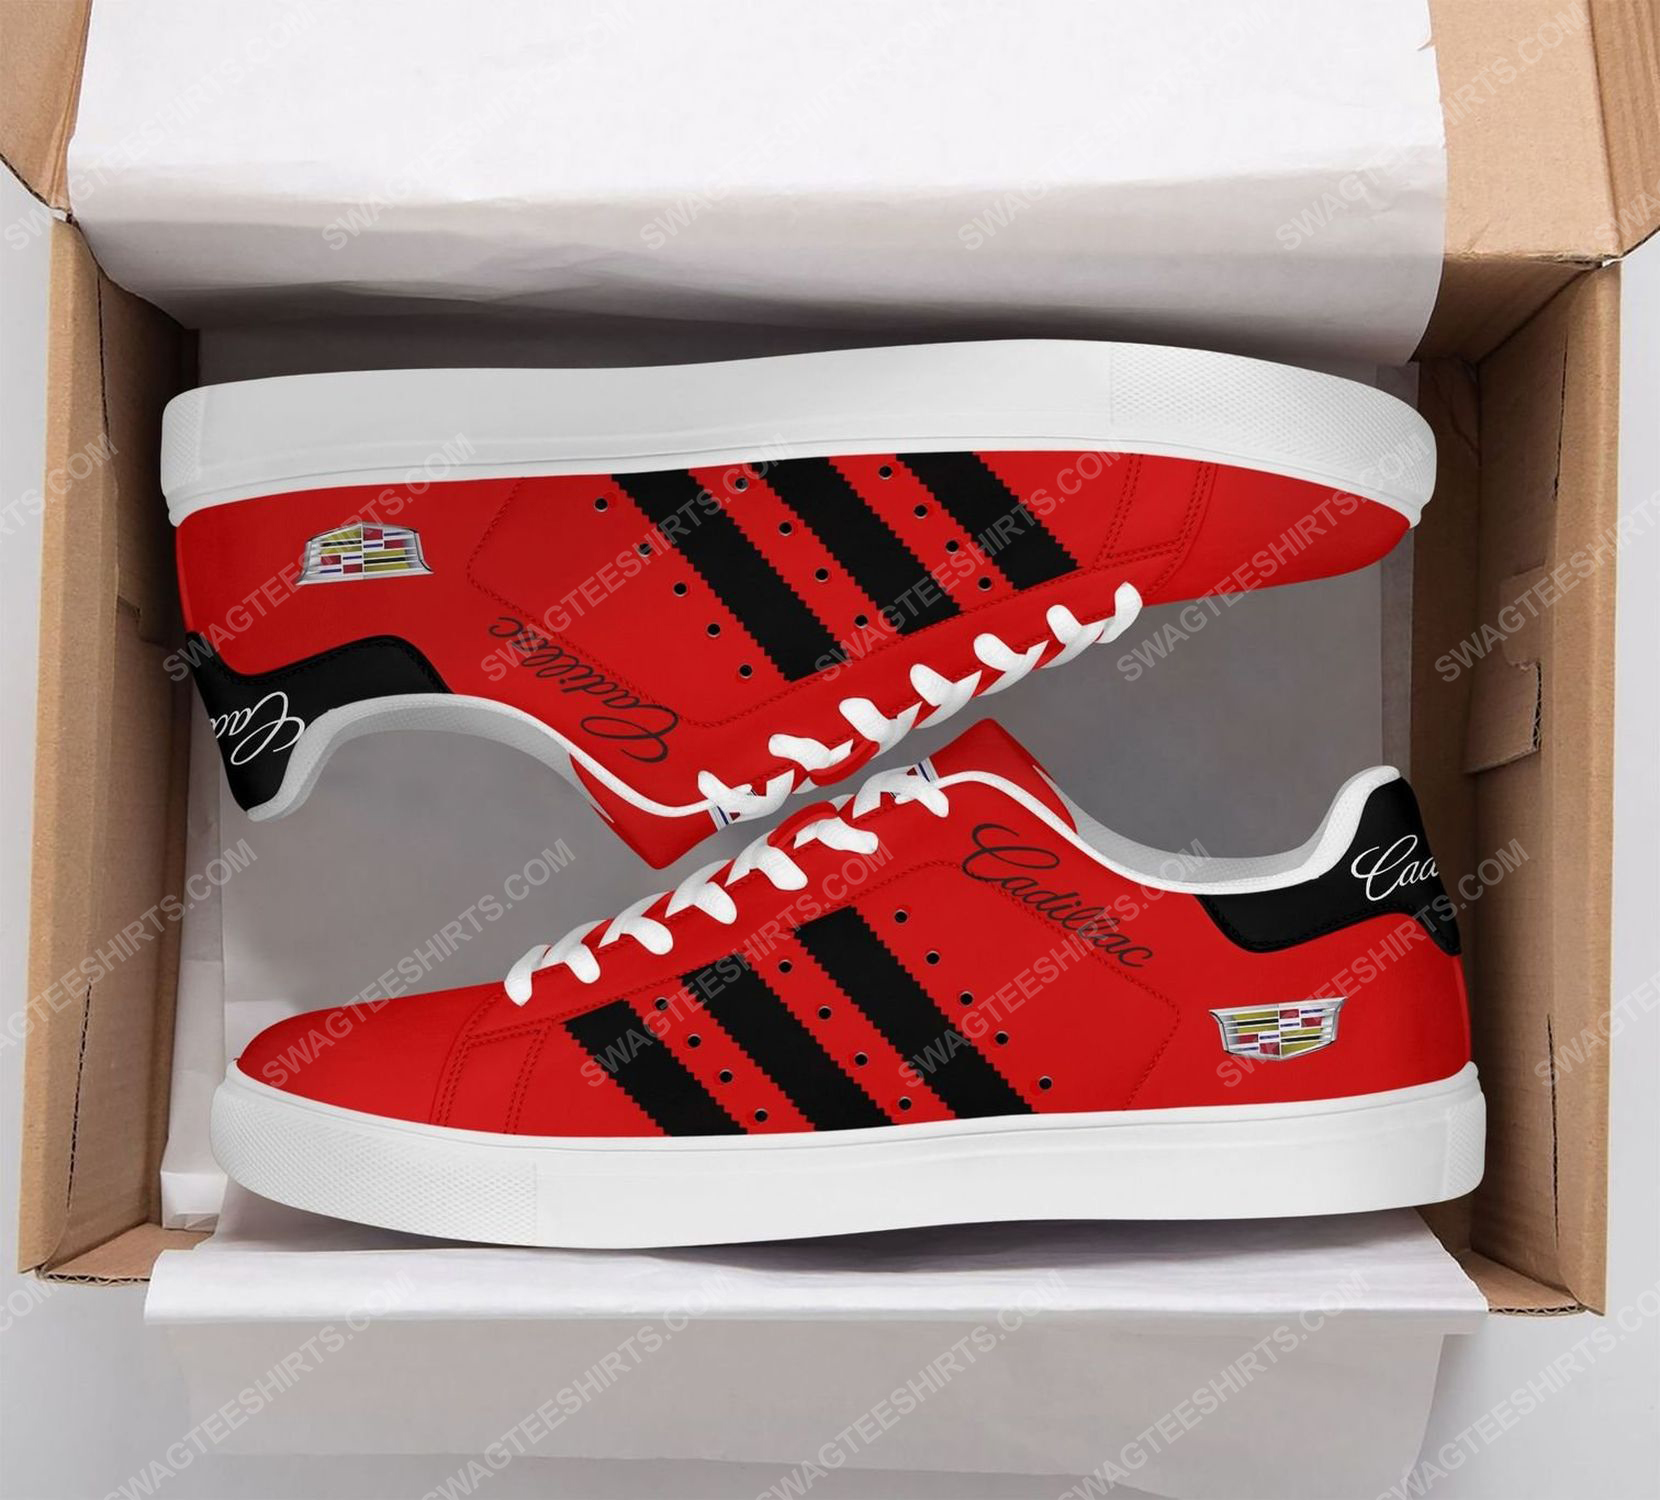 Cadillac car version red stan smith shoes 2